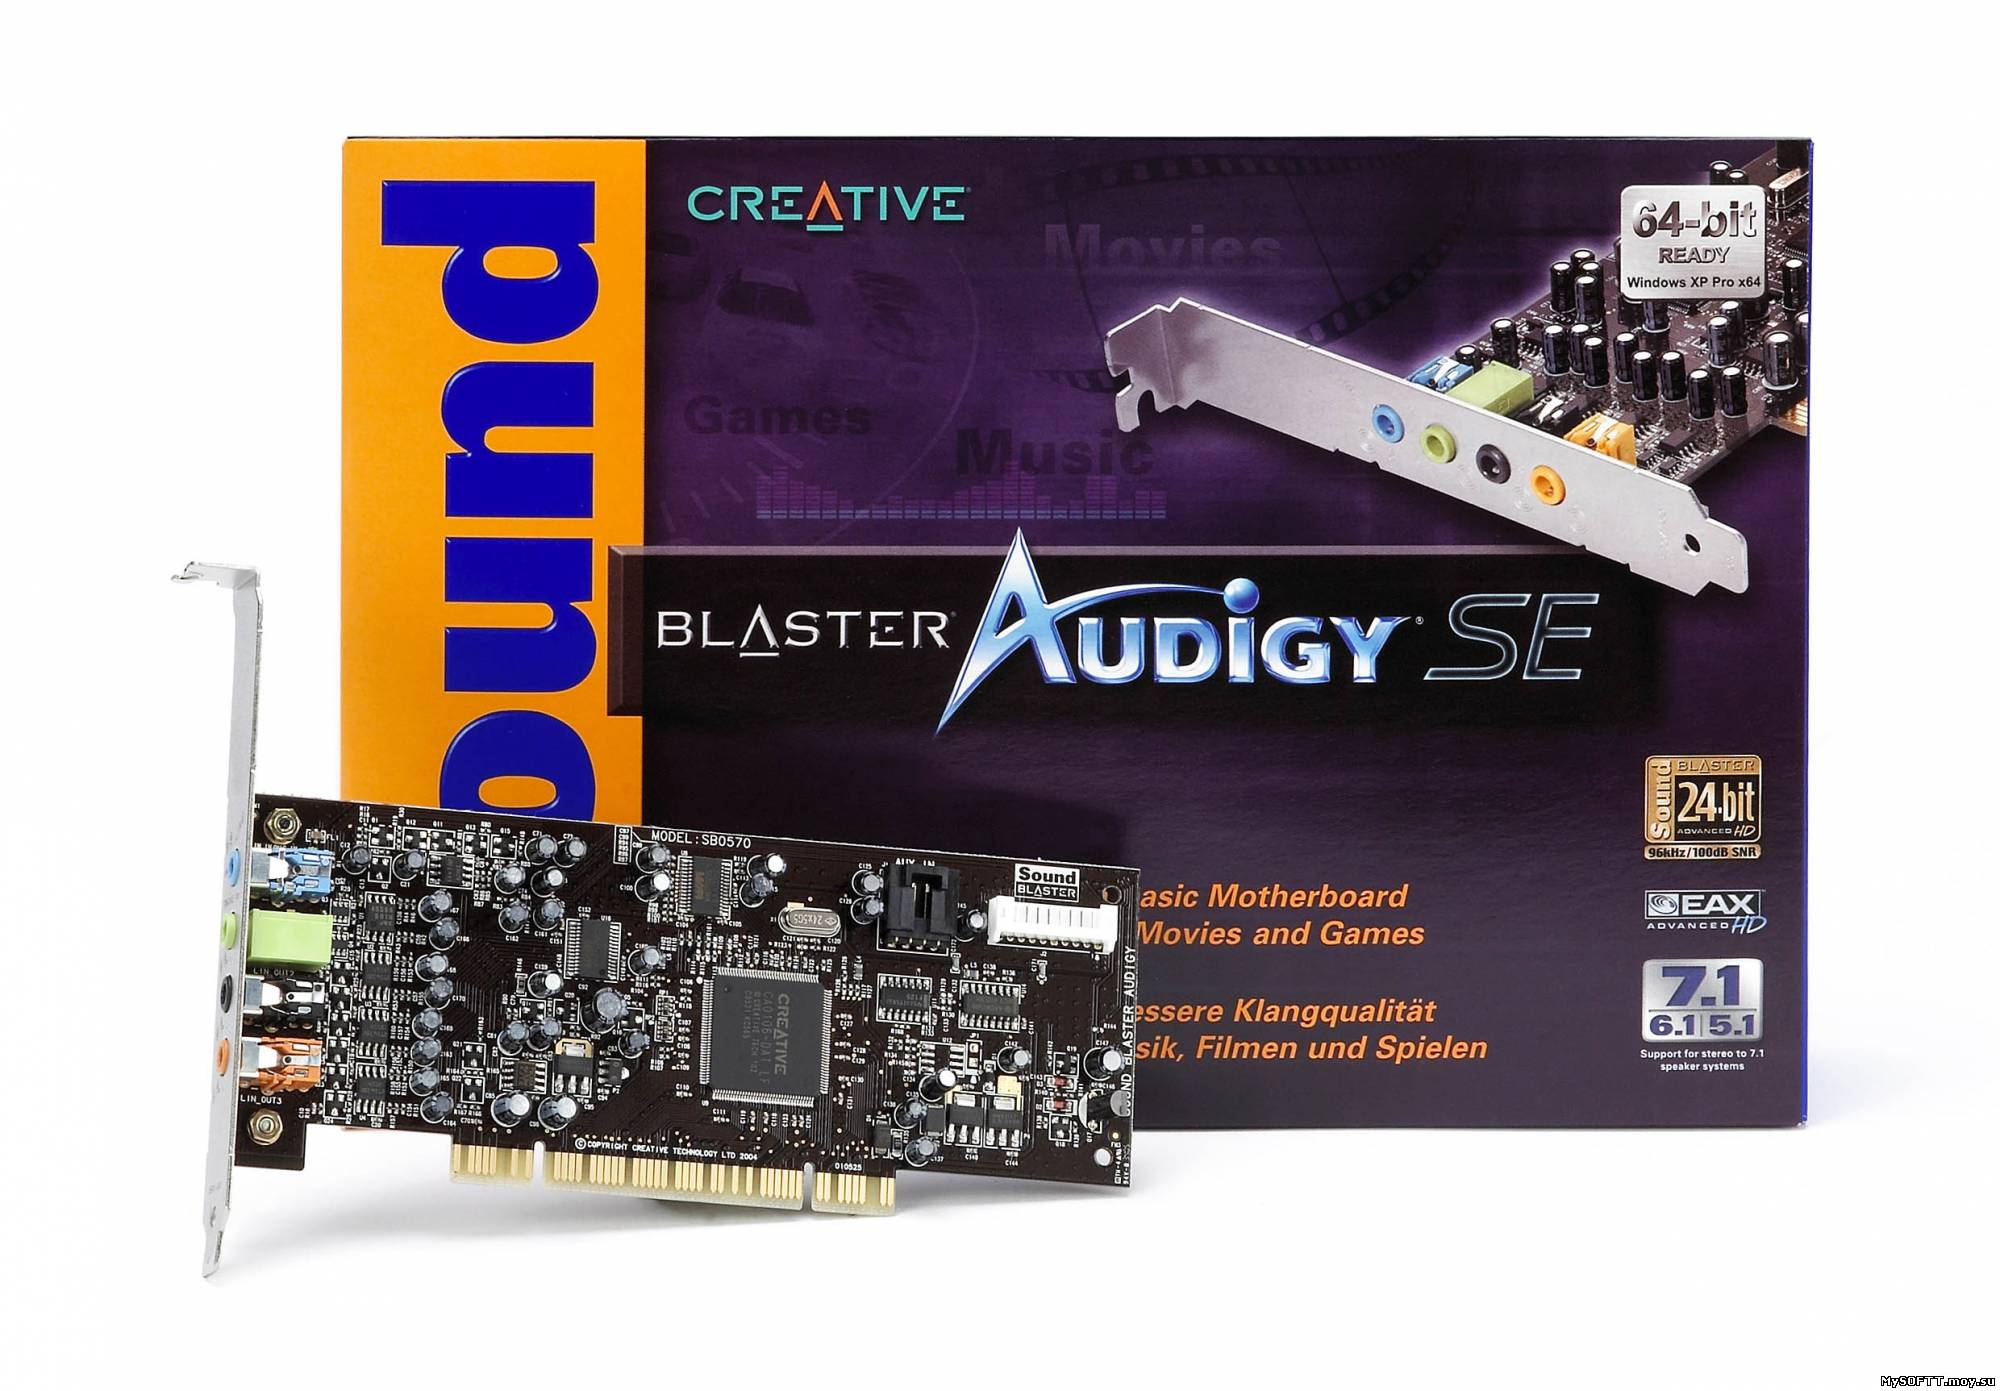 Creative Sound Blaster Audigy/Live Beta Driver 1.04.0079 for Windows 7